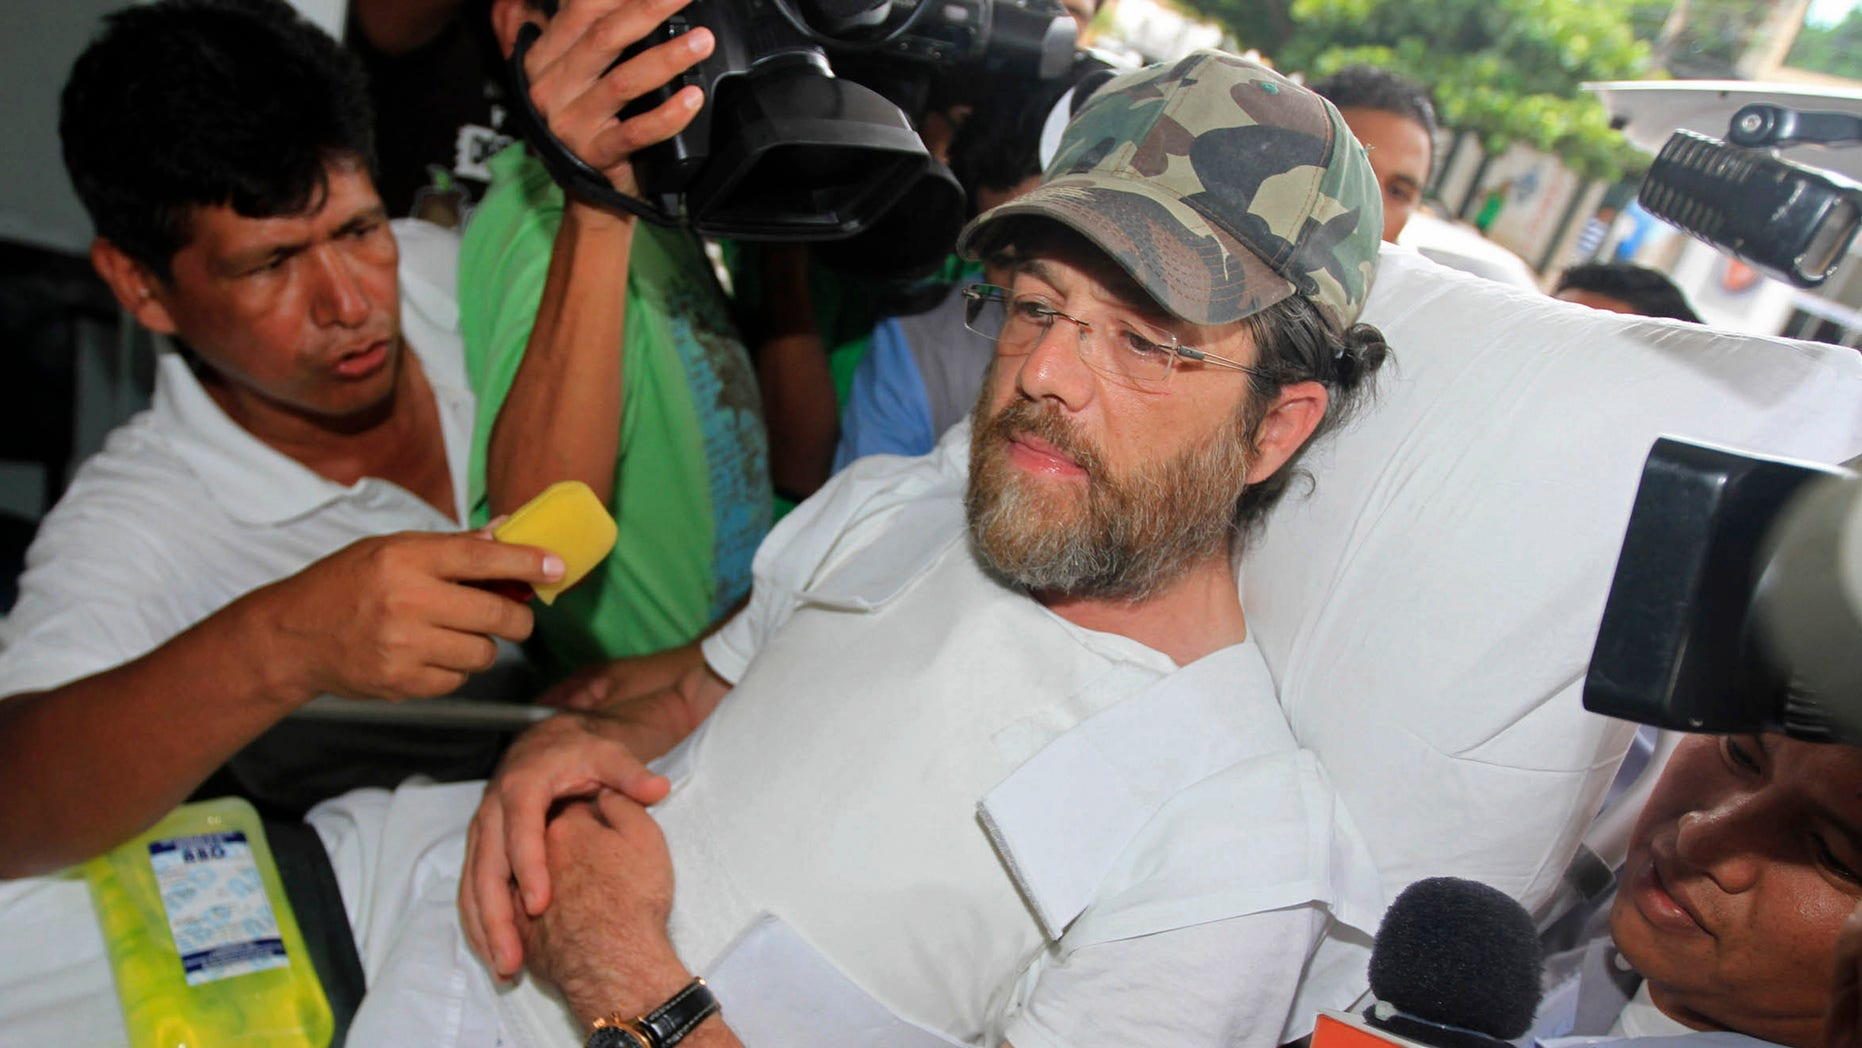 Dec. 11, 2012: Members of the press surround U.S. businessman Jacob Ostreicher as he arrives in a hospital bed wearing a flak jacket to his court hearing in Santa Cruz, Bolivia.